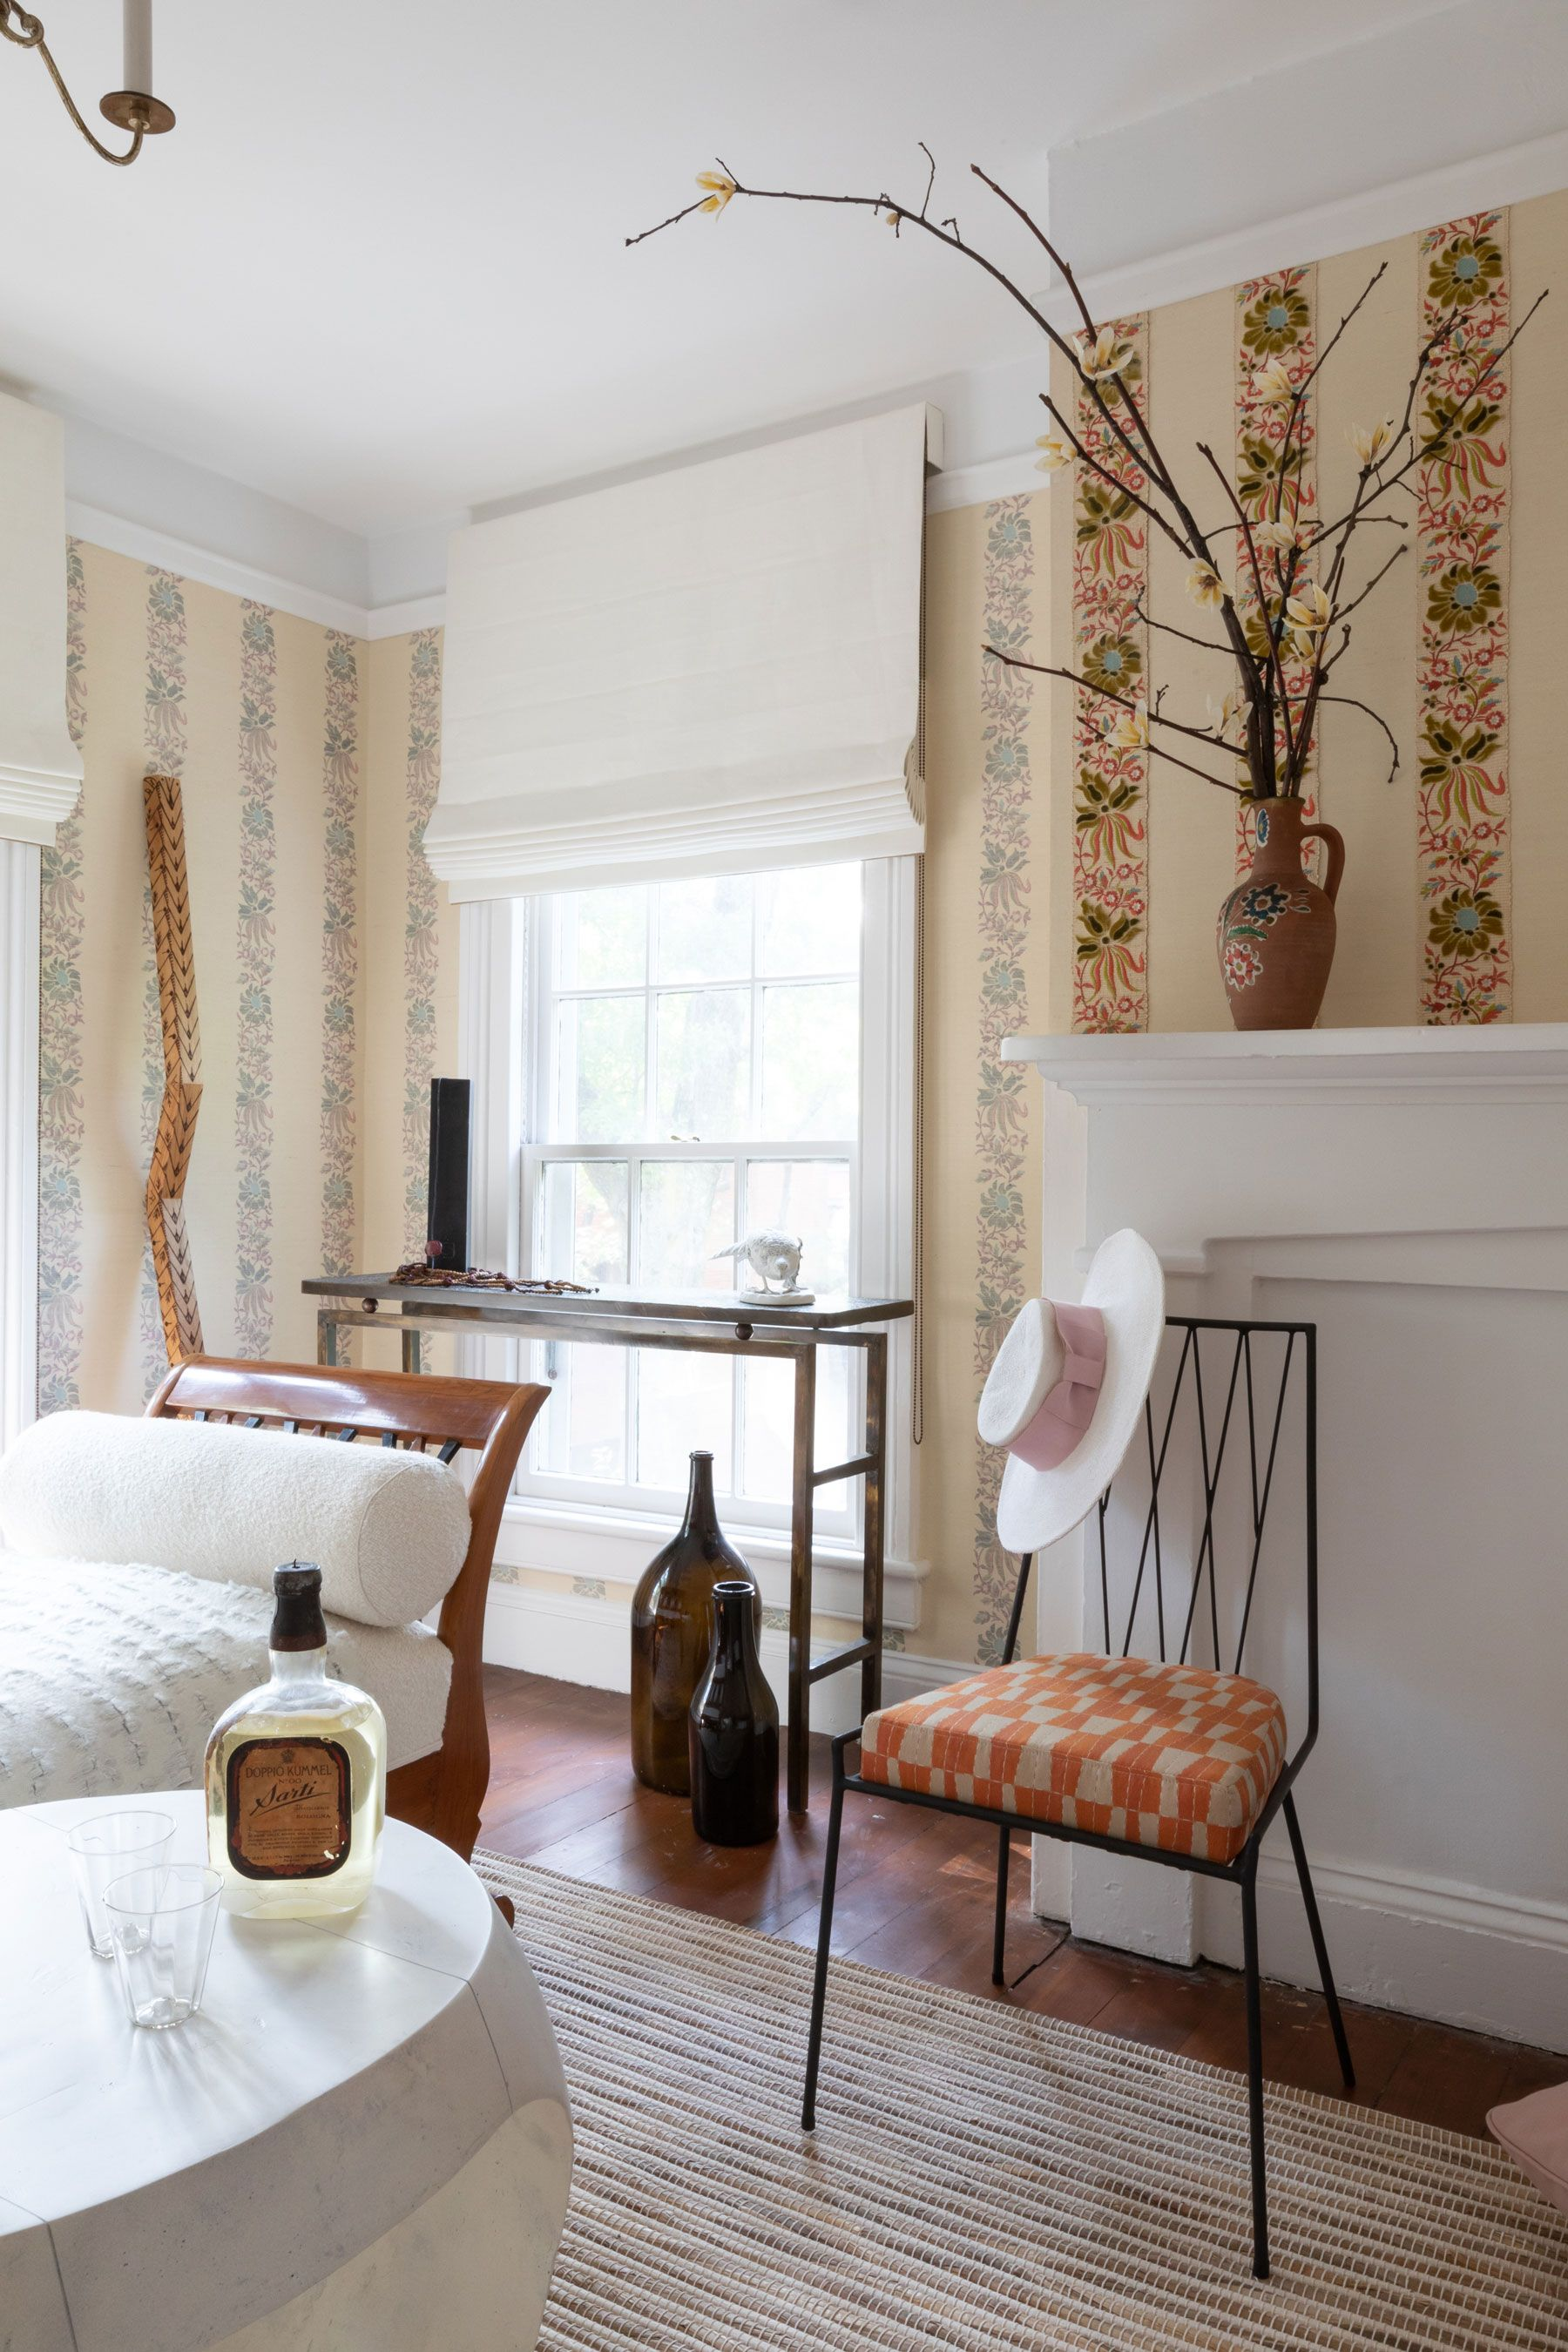 A Creative Alternative to Wallpaper Makes This Bedroom Delightfully Unique